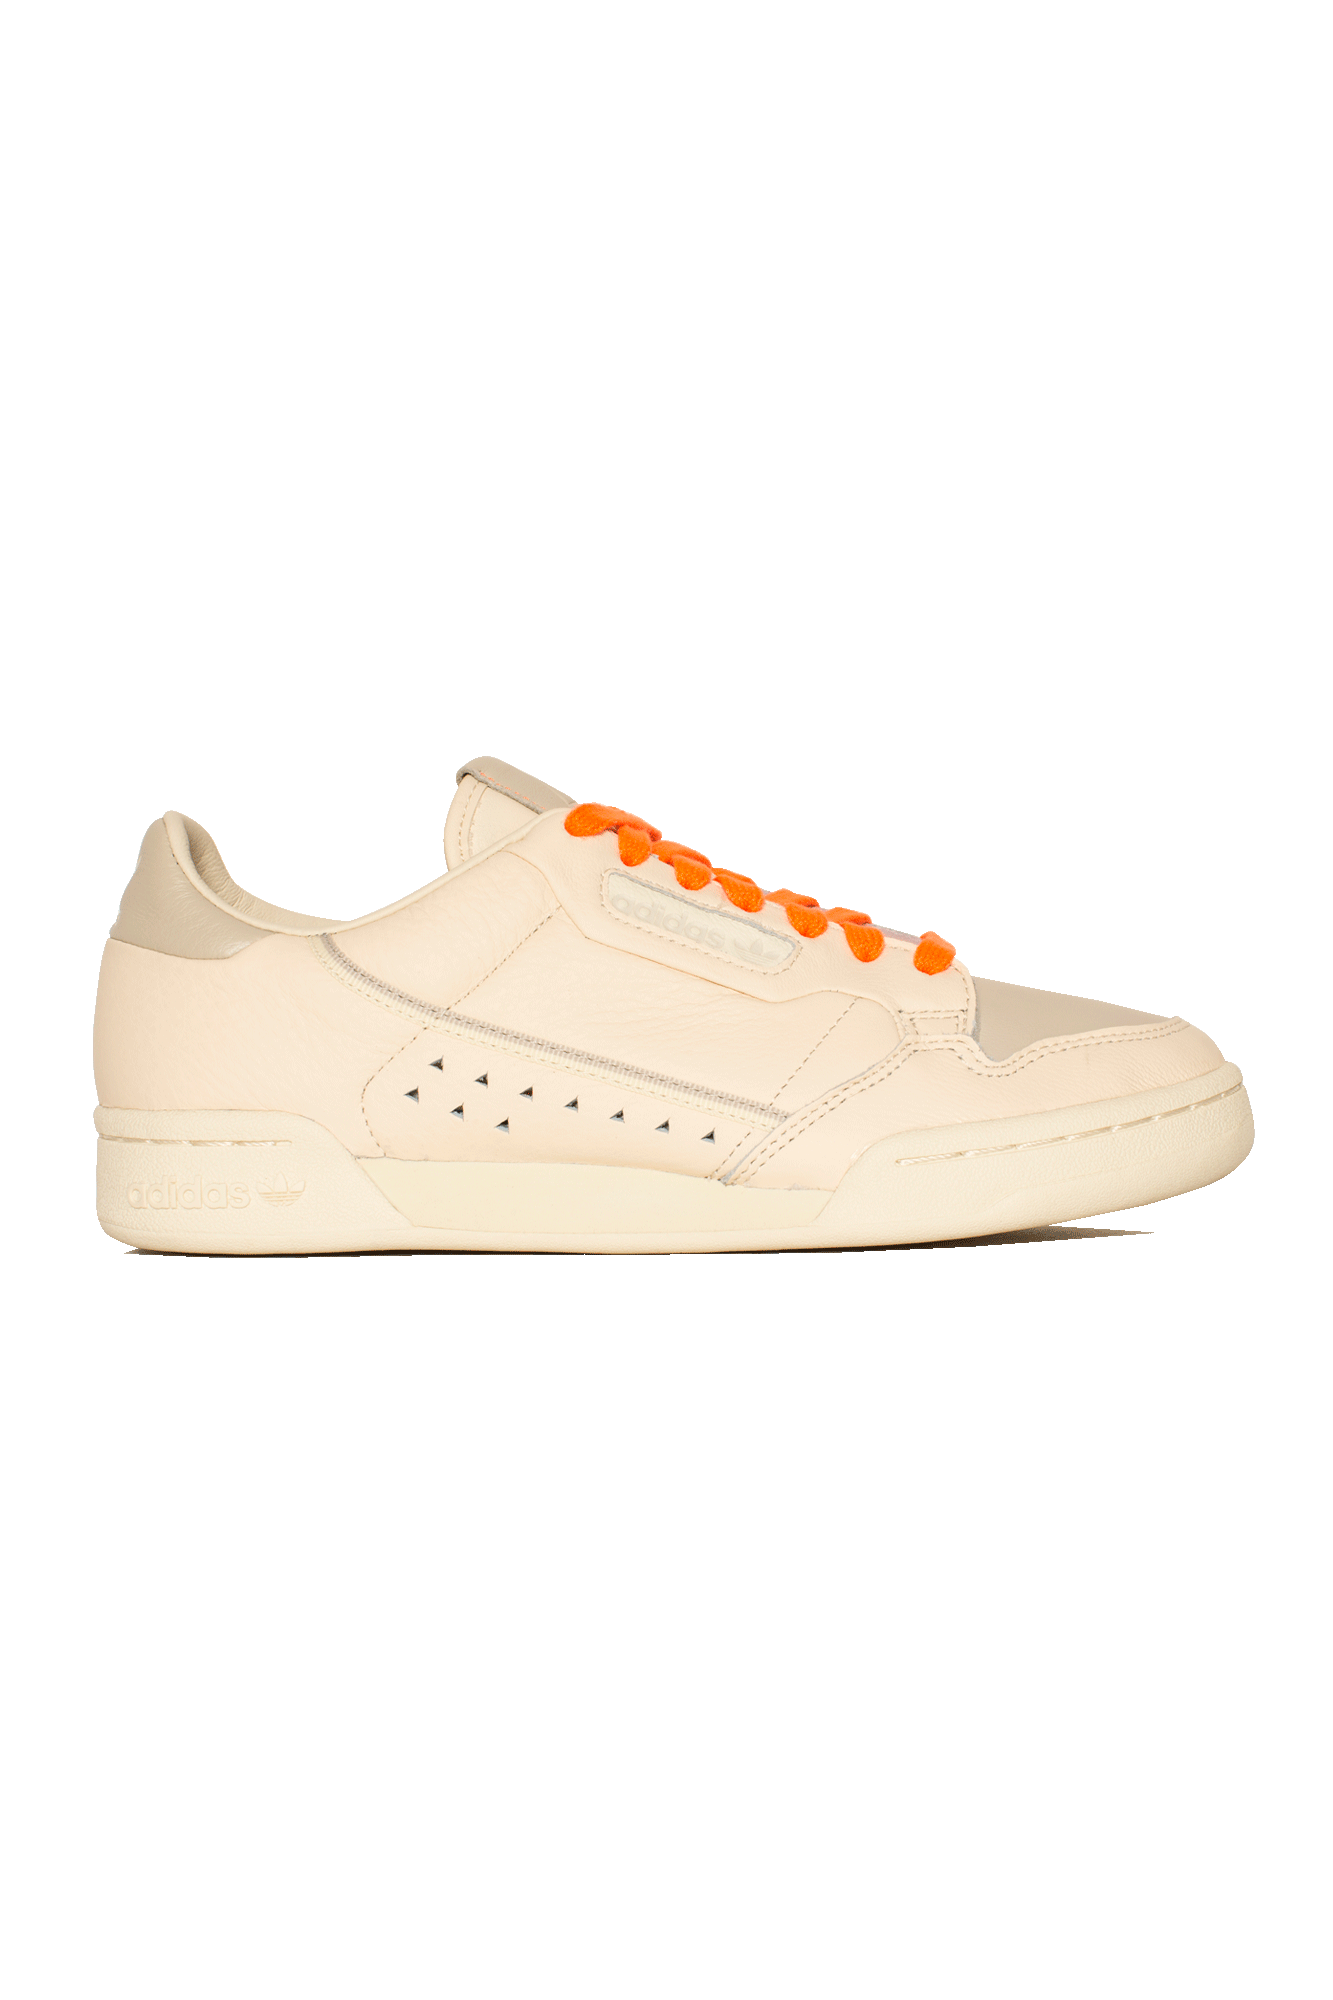 Adidas Originals Sneakers PW Continental 80 Bianco FX8002#000#ECRTIN#6,5 - One Block Down